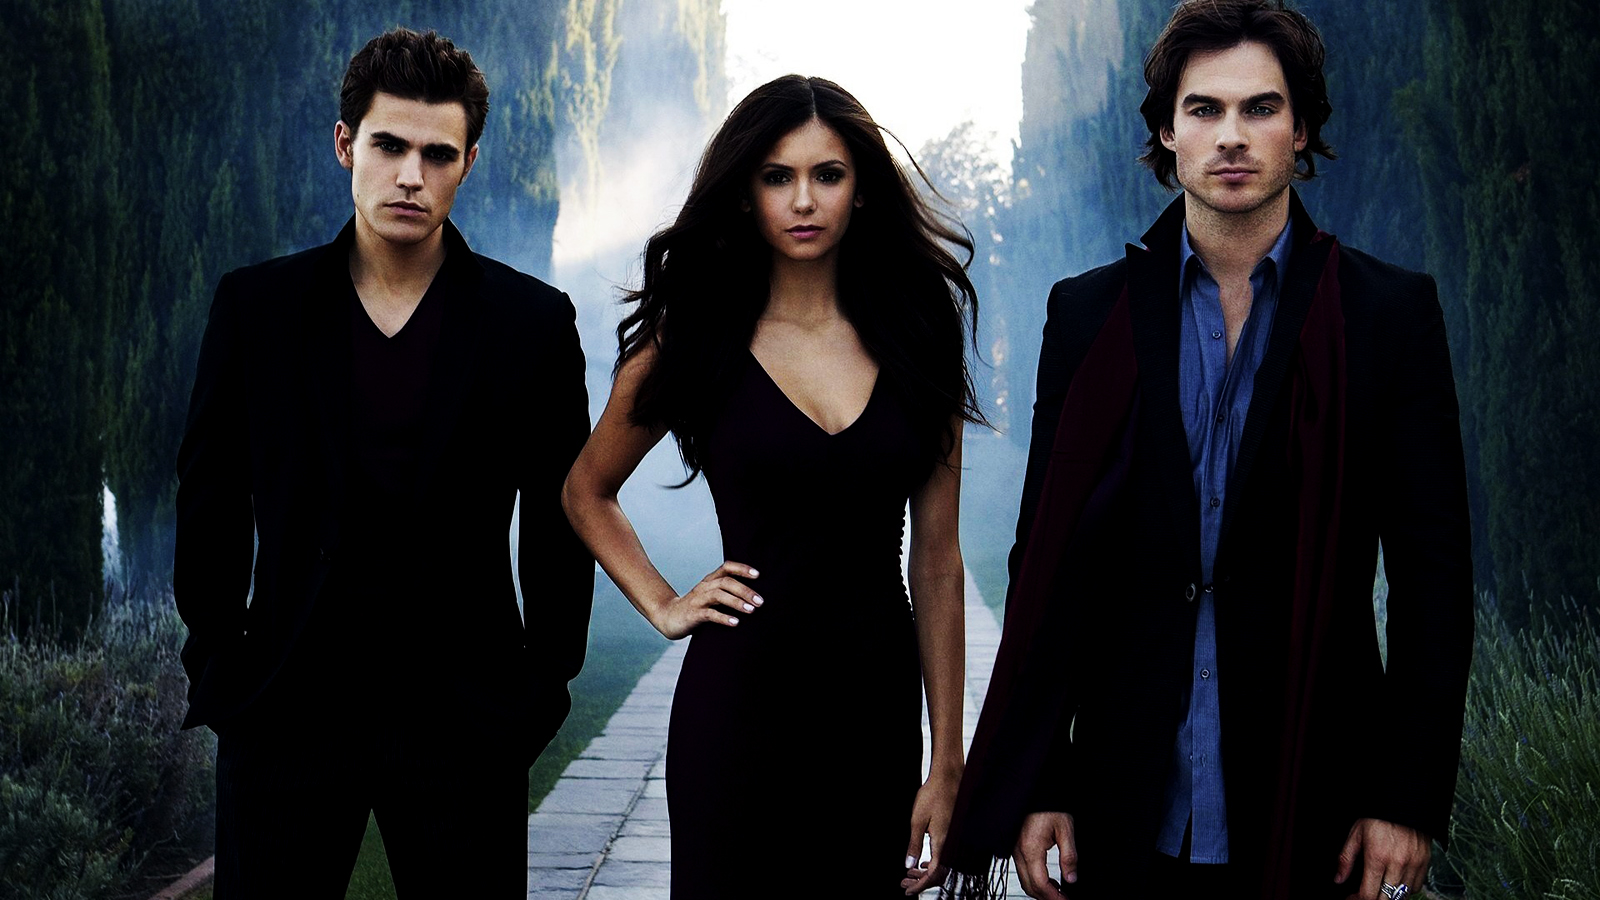 vampire diaries characters hd wallpapers hd wallpapers